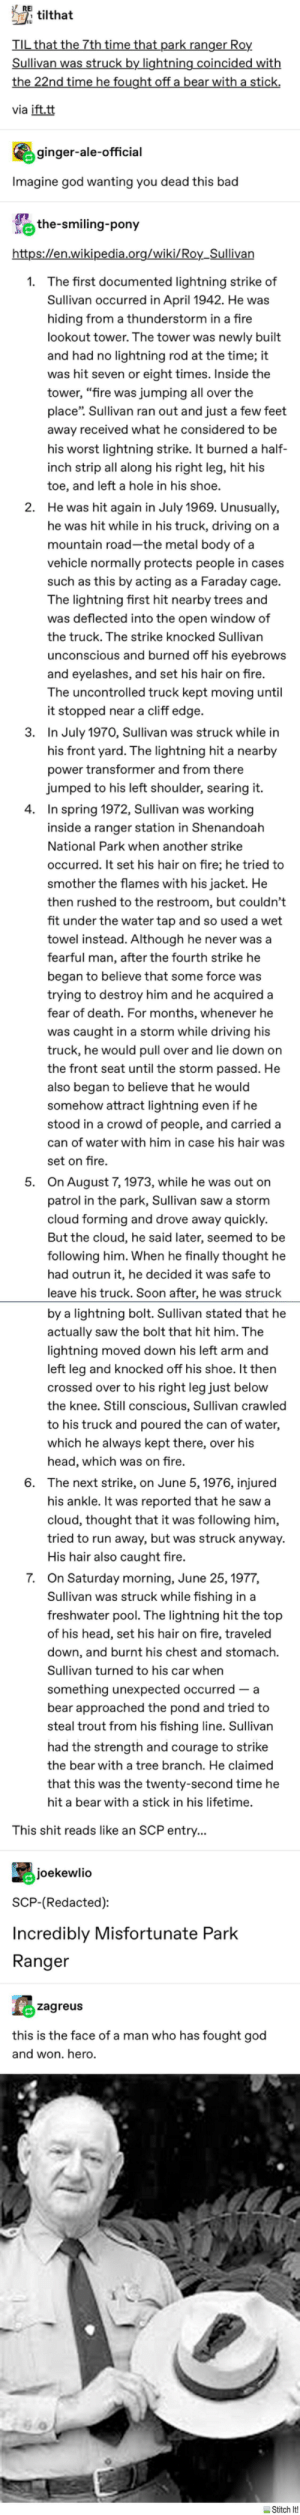 """god quakes in His presence: REI  tilthat  TIL that the 7th time that park ranger Roy.  Sullivan was struck by lightning coincided with  the 22nd time he fought off a bear with a stick.  via ift.tt  ginger-ale-official  Imagine god wanting you dead this bad  i the-smiling-pony  https://en.wikipedia.org/wiki/Roy_Sullivan  1. The first documented lightning strike of  Sullivan occurred in April 1942. He was  hiding from a thunderstorm in a fire  lookout tower. The tower was newly built  and had no lightning rod at the time; it  was hit seven or eight times. Inside the  tower, """"fire was jumping all over the  place"""". Sullivan ran out and just a few feet  away received what he considered to be  his worst lightning strike. It burned a half-  inch strip all along his right leg, hit his  toe, and left a hole in his shoe.  2.  He was hit again in July 1969. Unusually,  he was hit while in his truck, driving on a  mountain road-the metal body of a  vehicle normally protects people in cases  such as this by acting as a Faraday cage.  The lightning first hit nearby trees and  was deflected into the open window of  the truck. The strike knocked Sullivan  unconscious and burned off his eyebrows  and eyelashes, and set his hair on fire.  The uncontrolled truck kept moving until  it stopped near a cliff edge.  In July 1970, Sullivan was struck while in  his front yard. The lightning hit a nearby  3.  power transformer and from there  jumped to his left shoulder, searing it.  4. In spring 1972, Sullivan was working  inside a ranger station in Shenandoah  National Park when another strike  occurred. It set his hair on fire; he tried to  smother the flames with his jacket. He  then rushed to the restroom, but couldn't  fit under the water tap and so used a wet  towel instead. Although he never was a  fearful man, after the fourth strike he  began to believe that some force was  trying to destroy him and he acquired a  fear of death. For months, whenever he  was caught in a storm while d"""